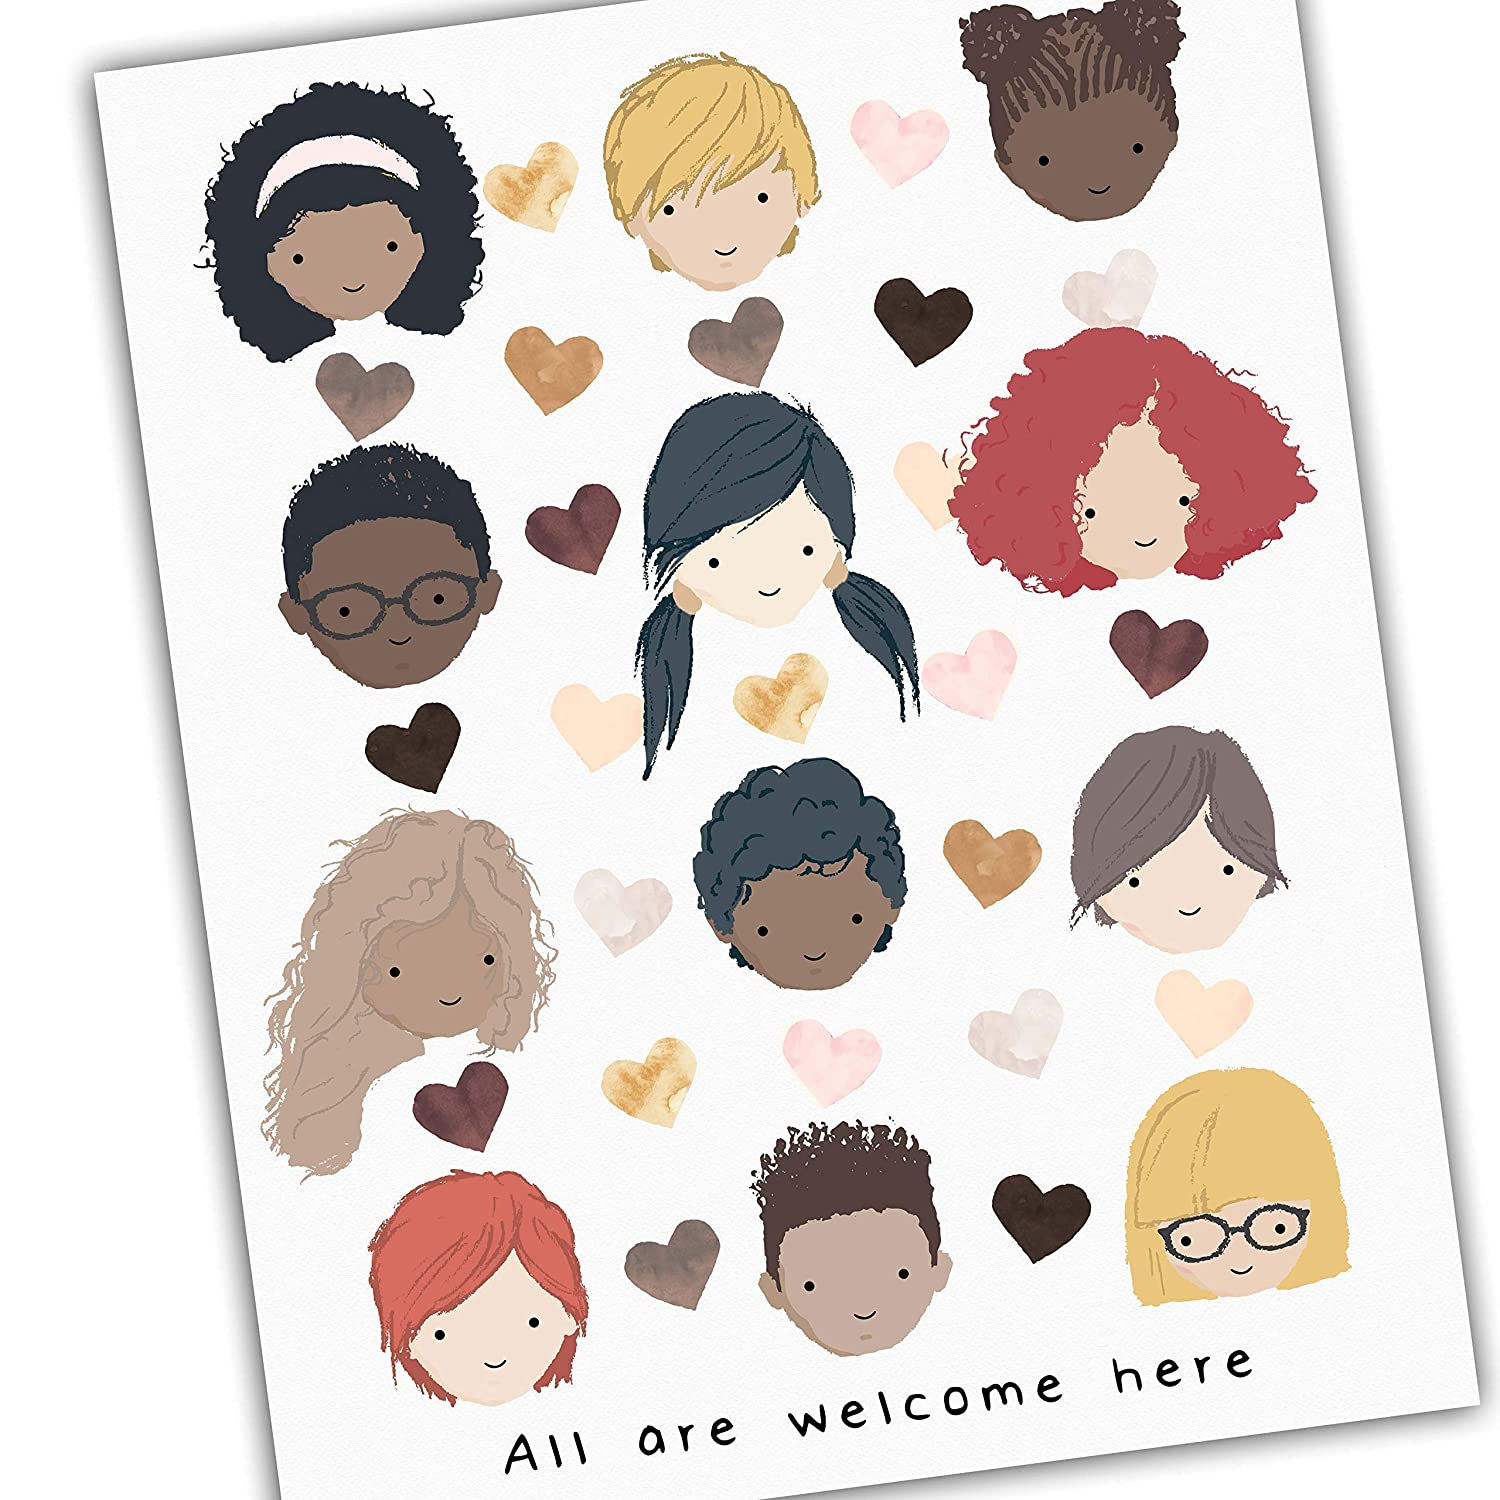 Diversity Art for Kids Hand Prints Strength in Unity Beauty in Diversity Power in Kindness Courage in Truth Promote Unity Celebrate Diversity 16x20 or 24x36 UNFRAMED Poster Print 8x10 11x14